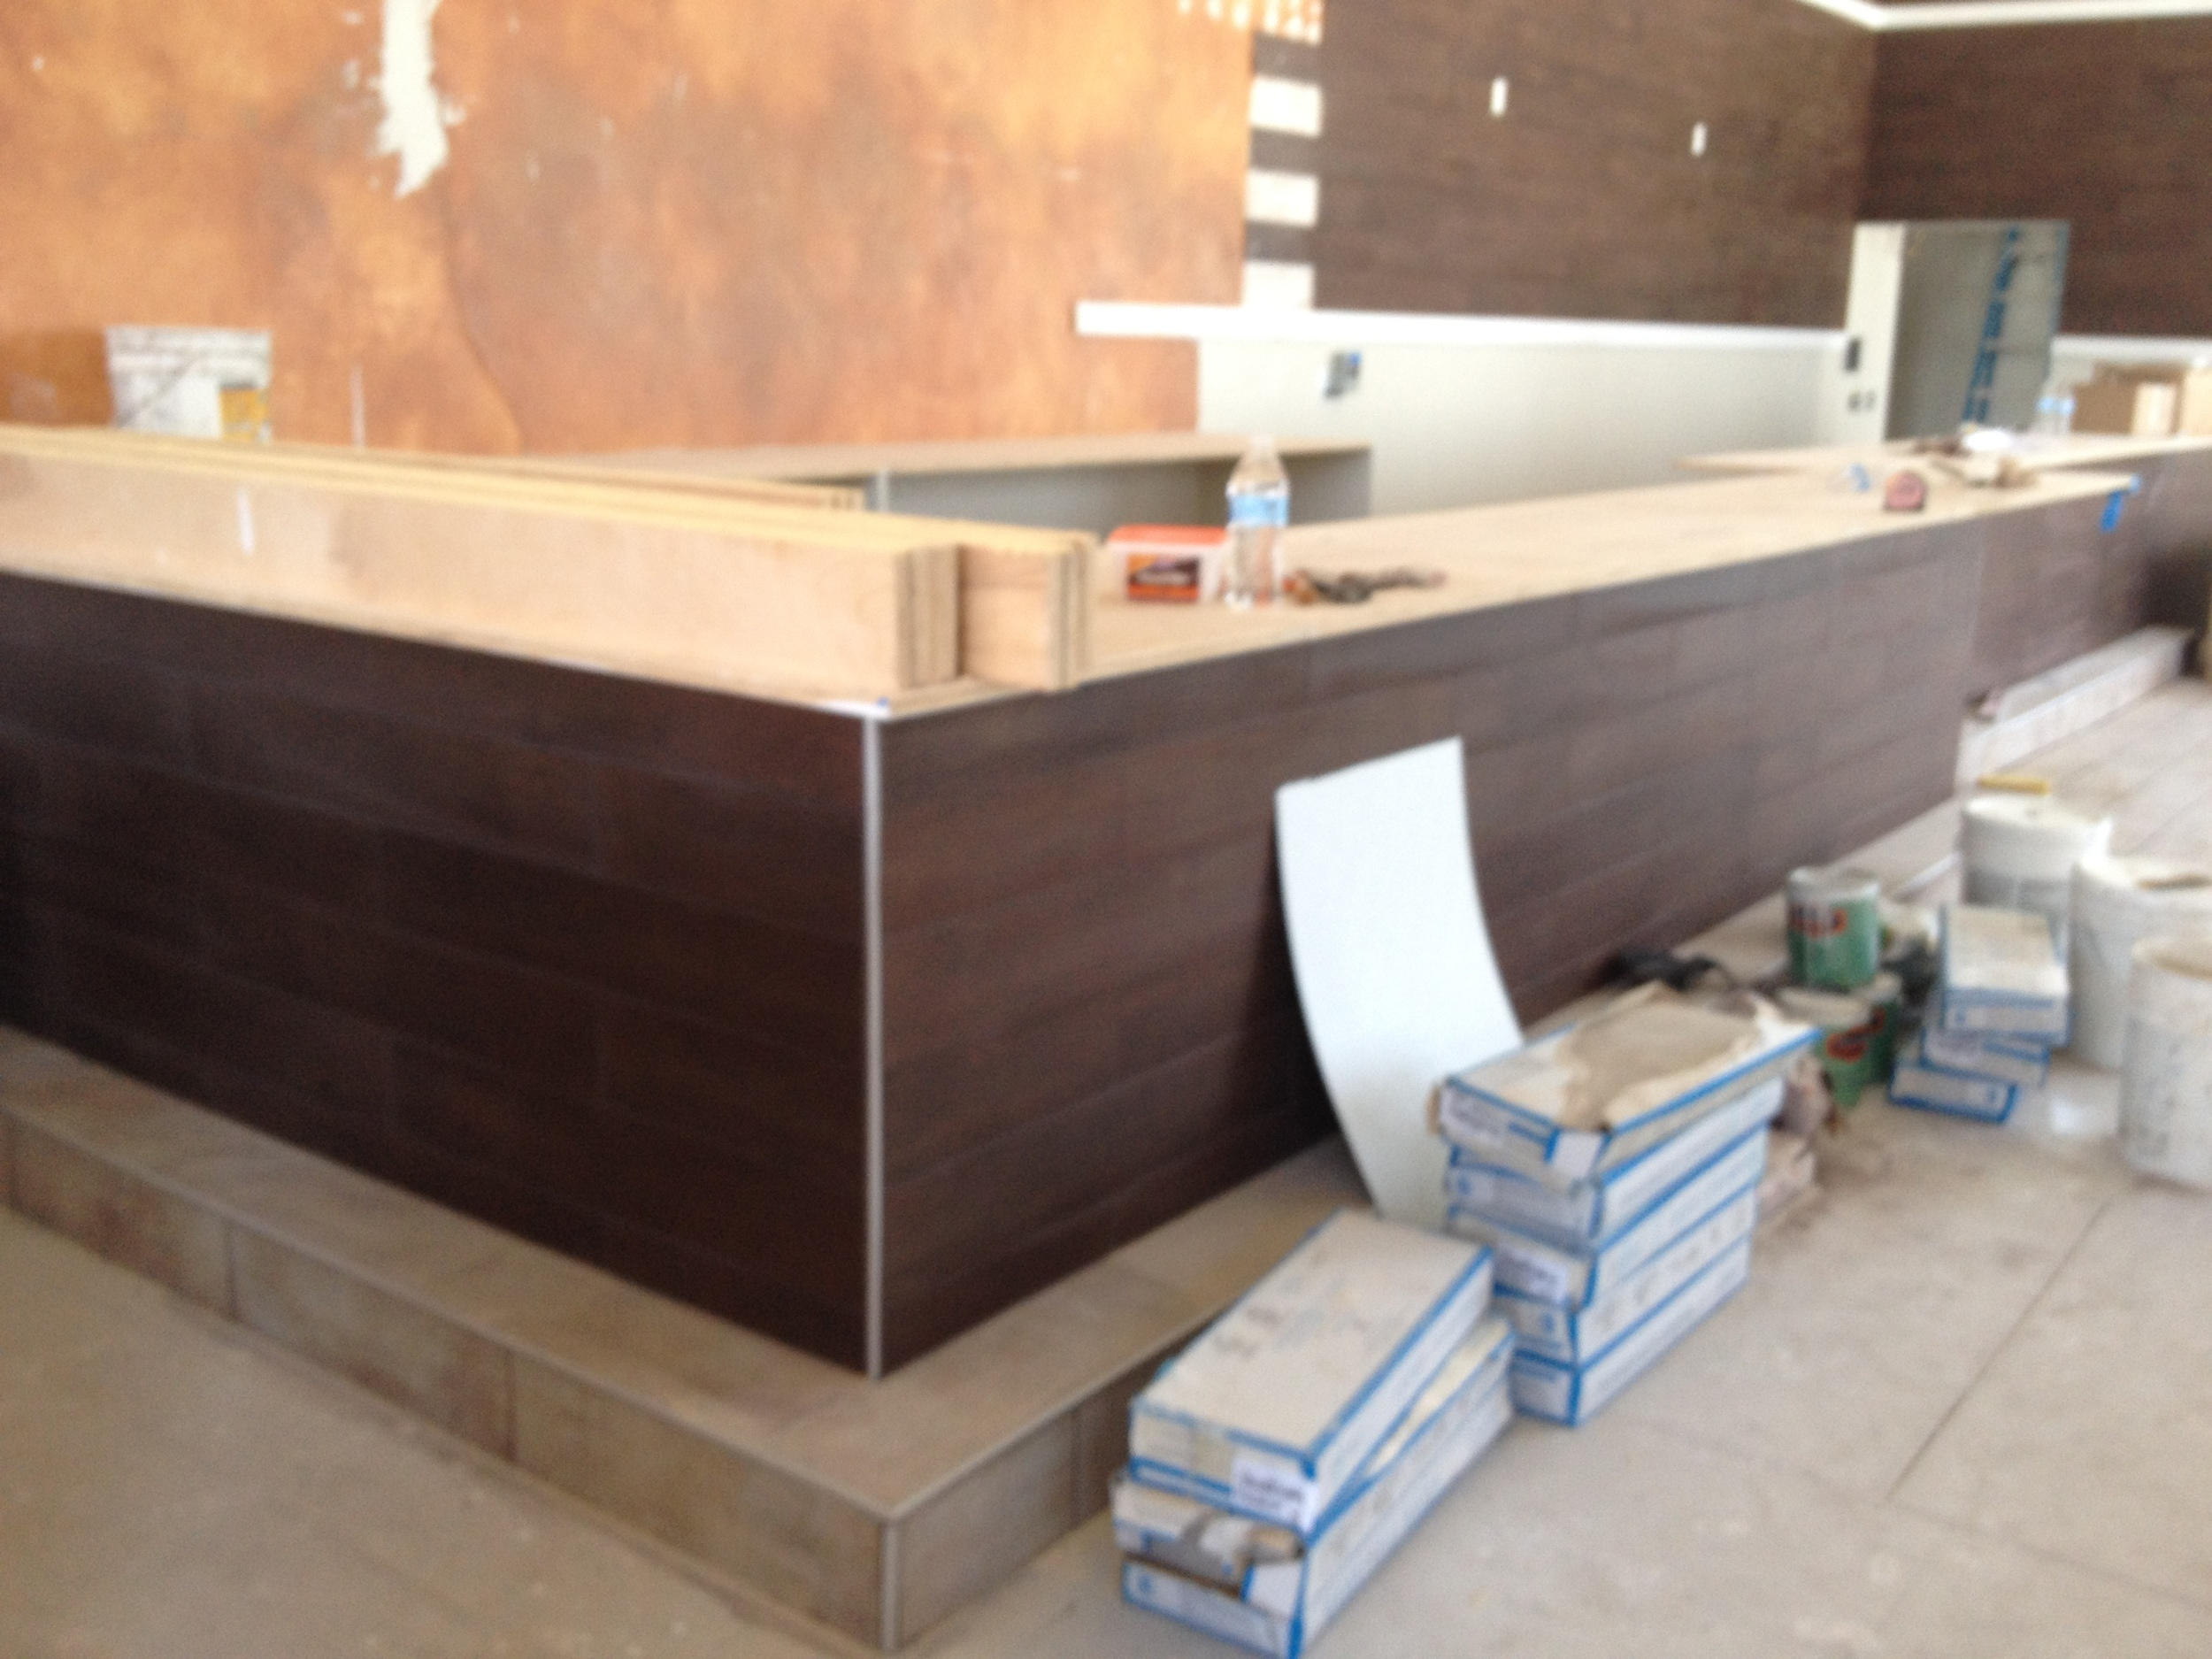 The front of the sushi bar seating